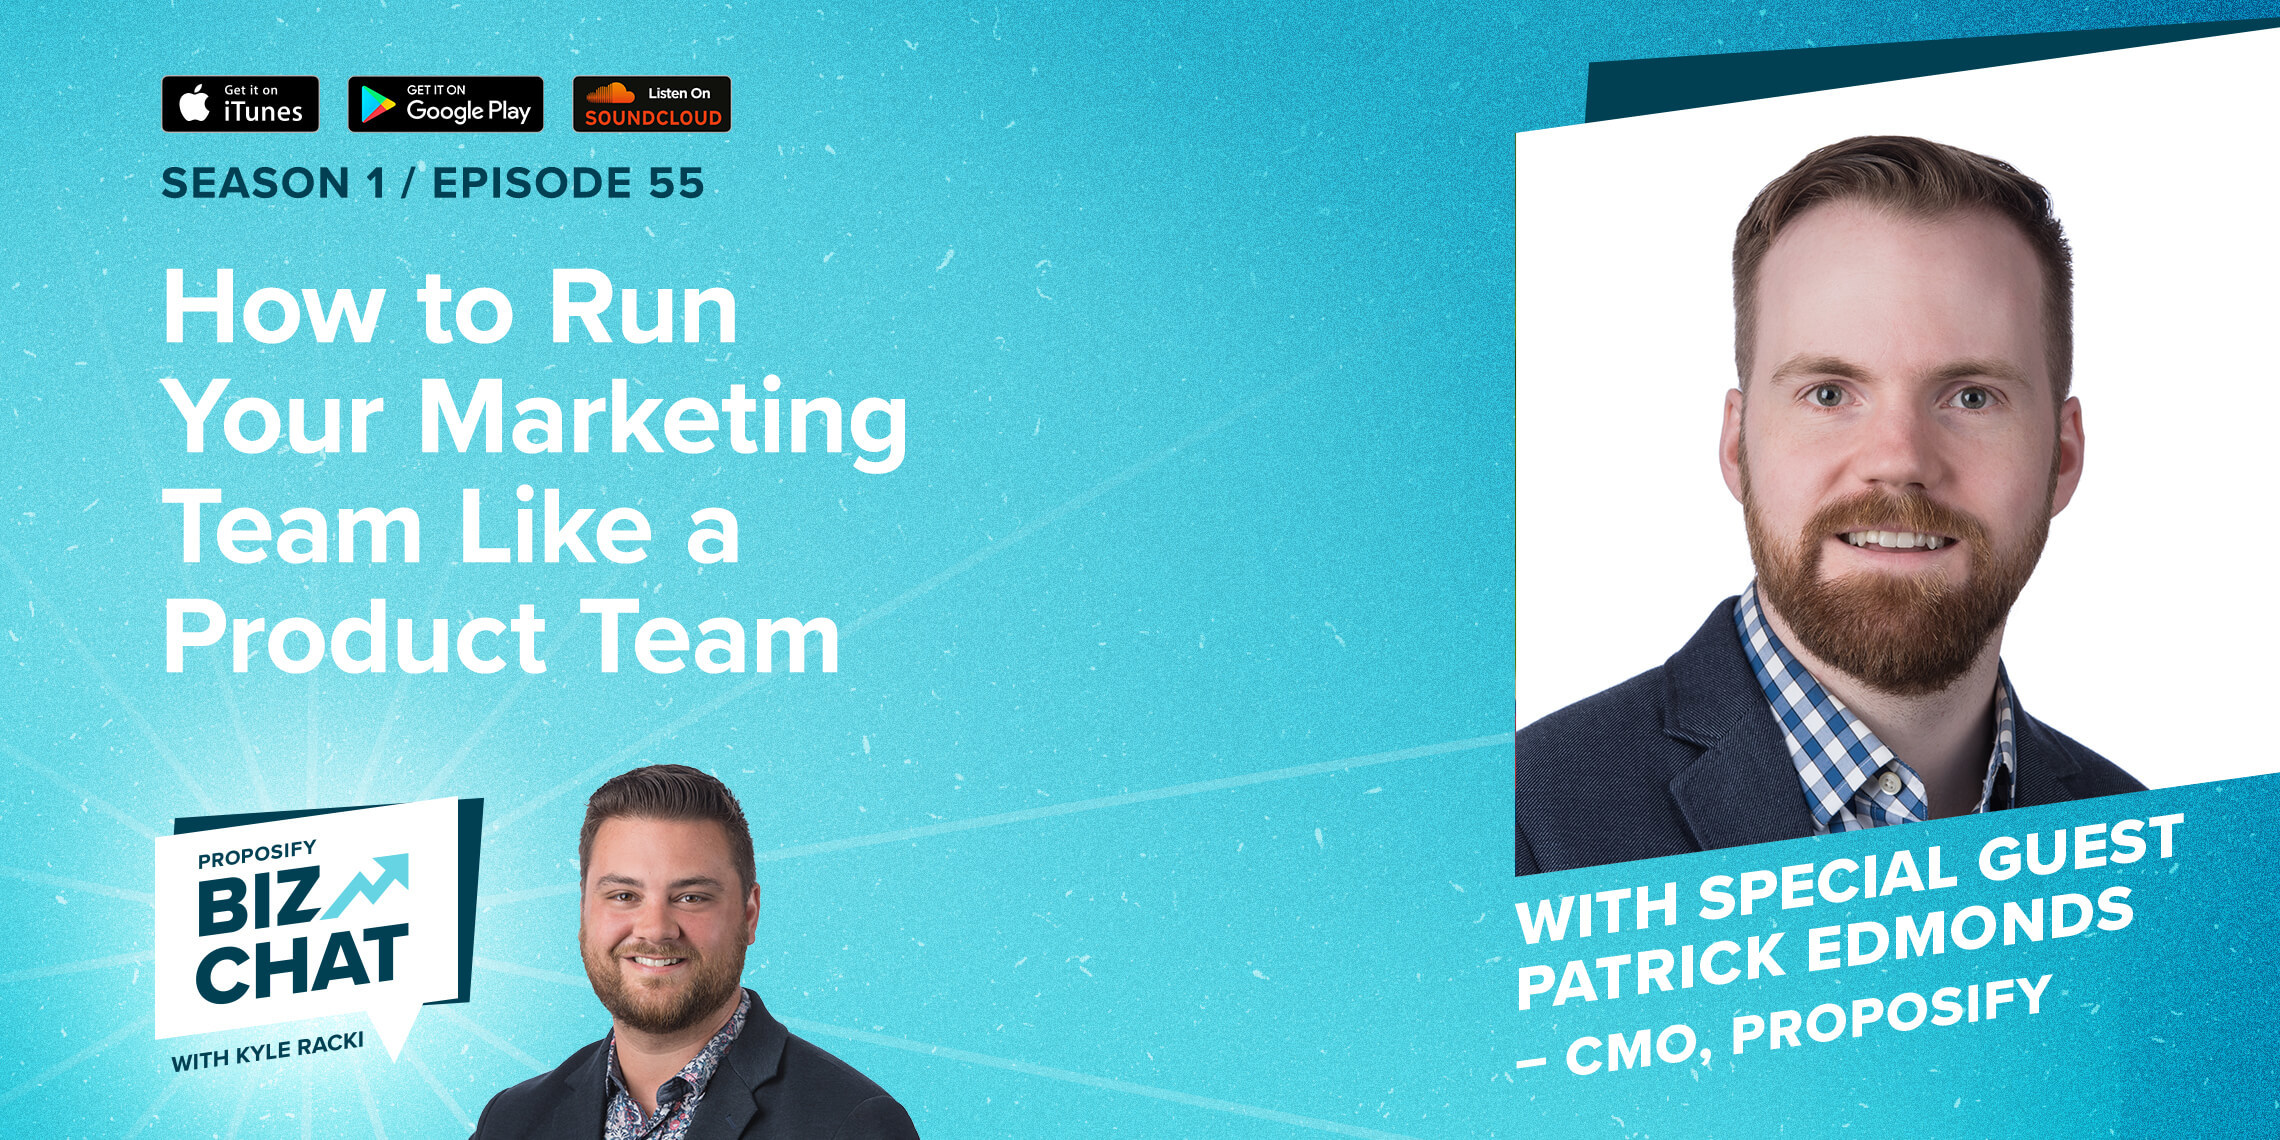 How to Run Your Marketing Team Like a Product Team